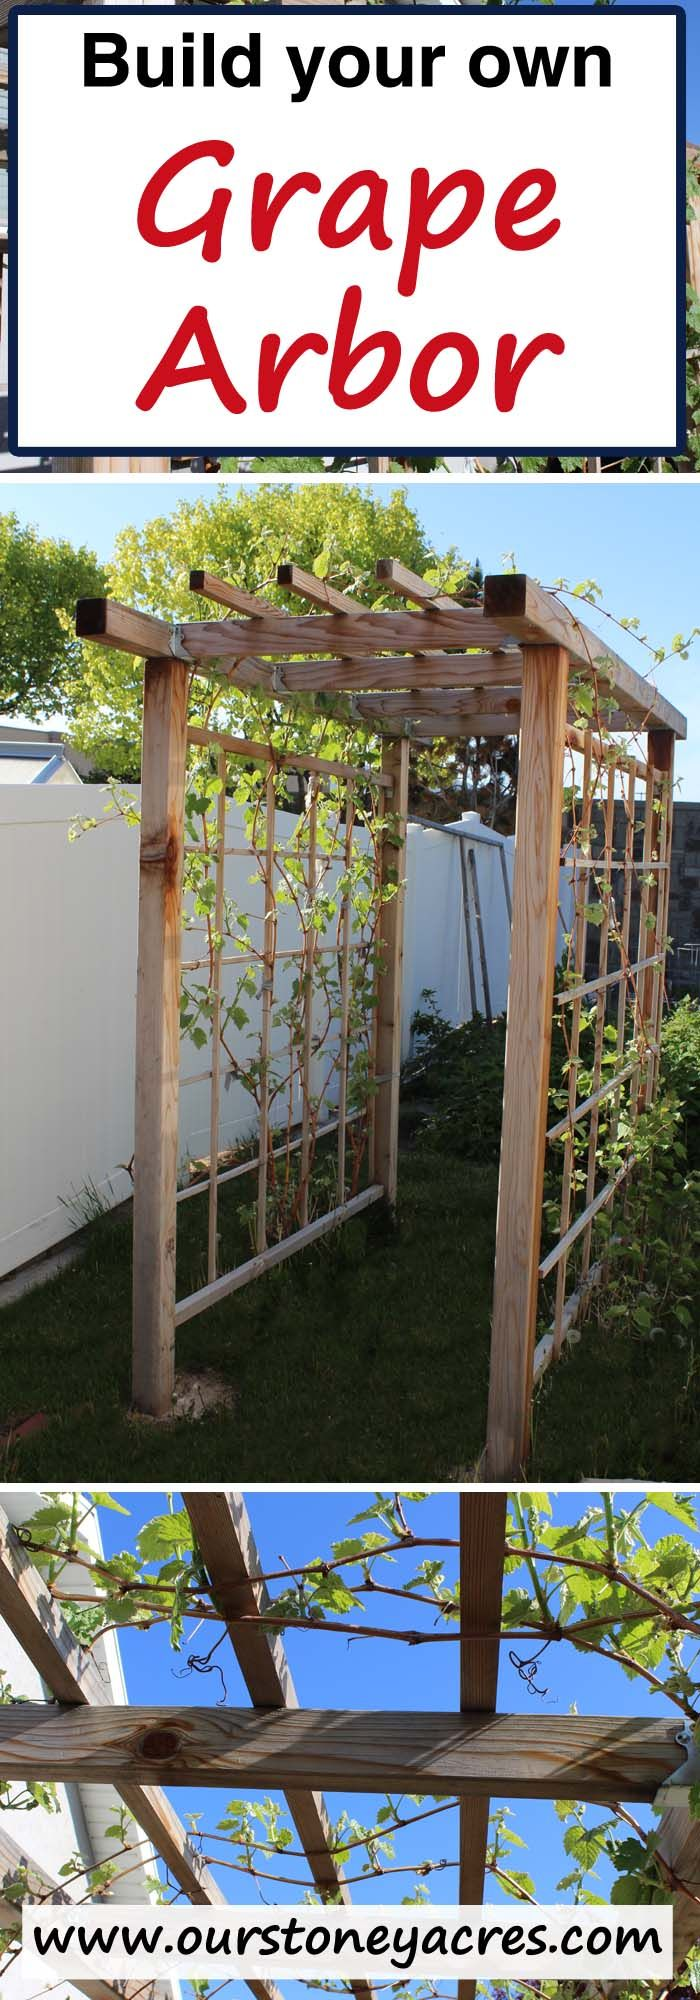 Pergola do-it-yourself for grapes or arbors: step by step instructions 78